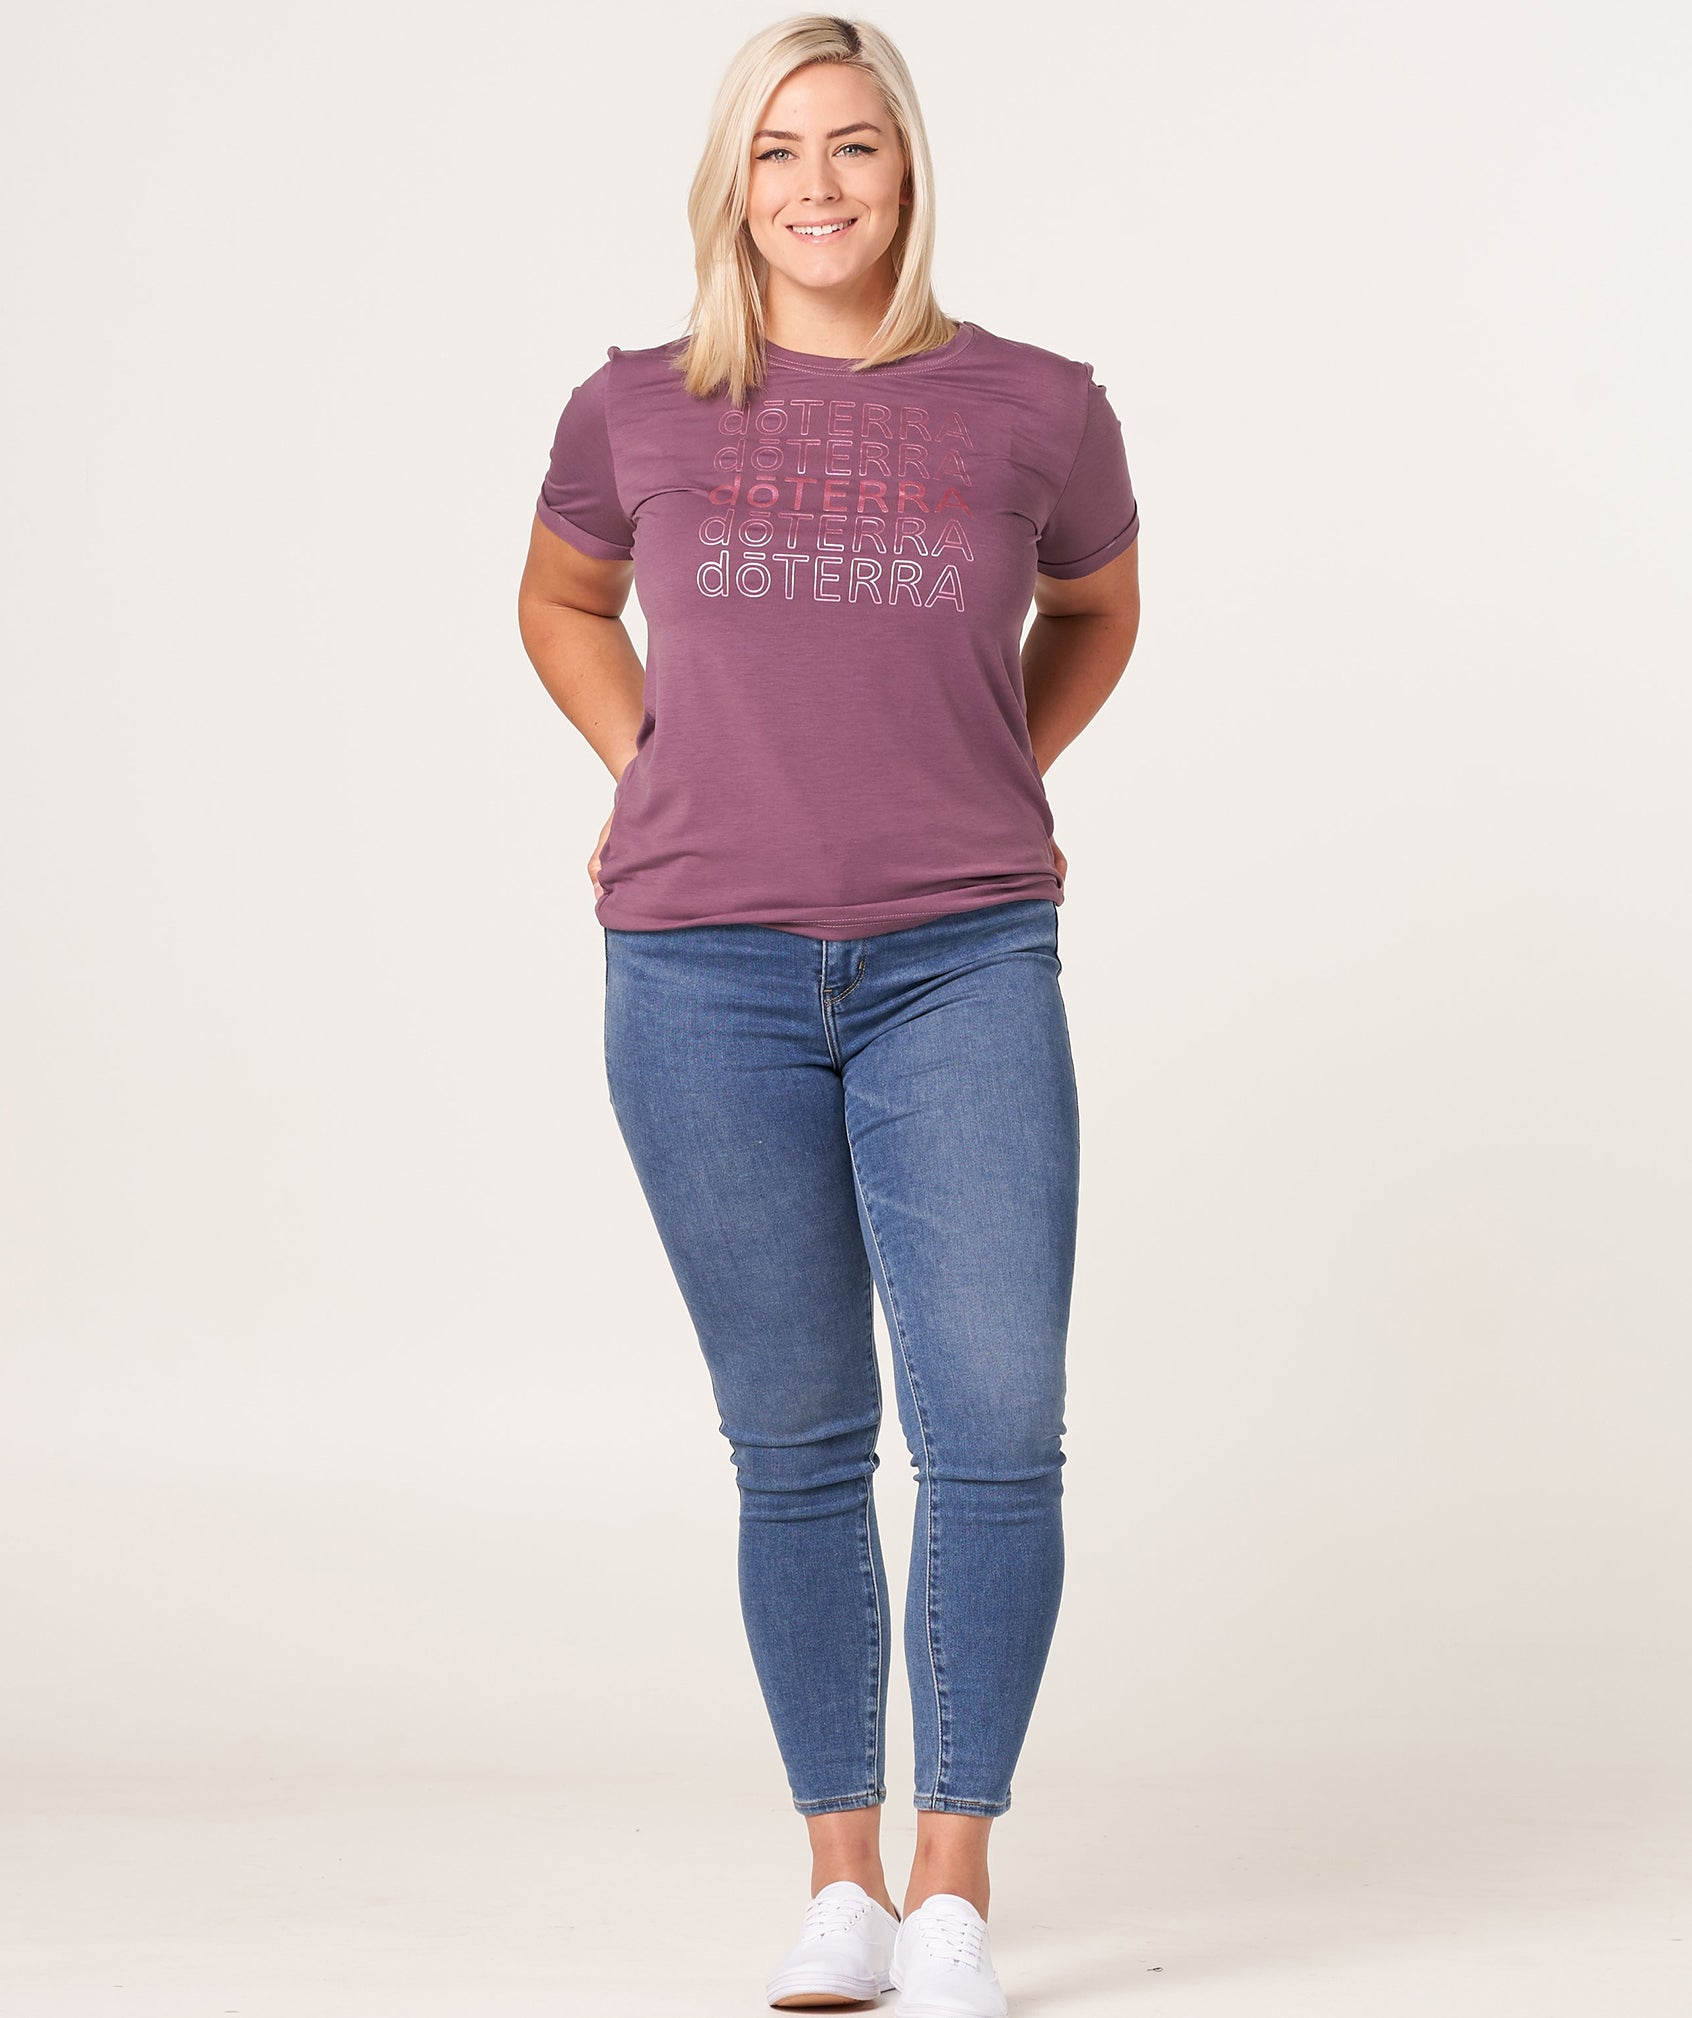 Women's Gift of the Earth Tee